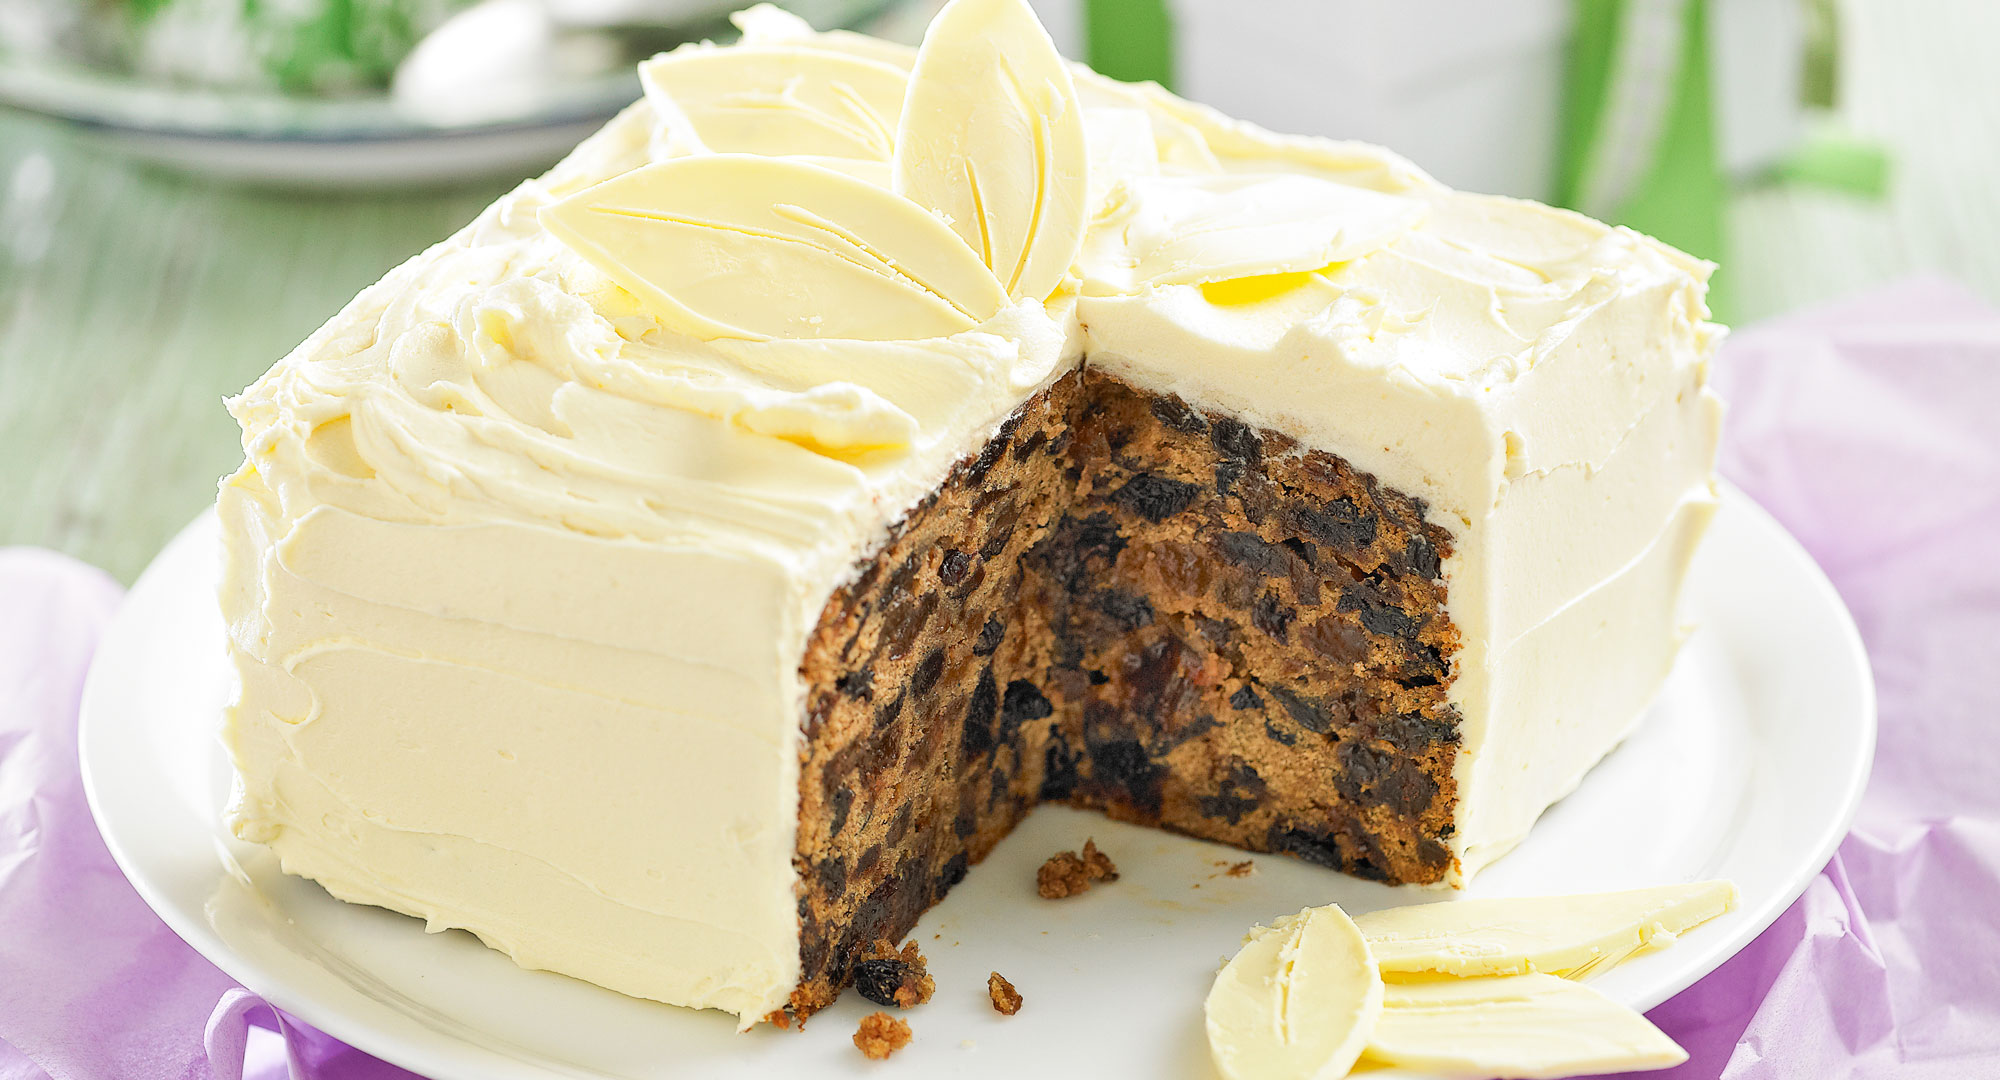 Traditional Christmas cake - DIY, Gardening, Craft ...